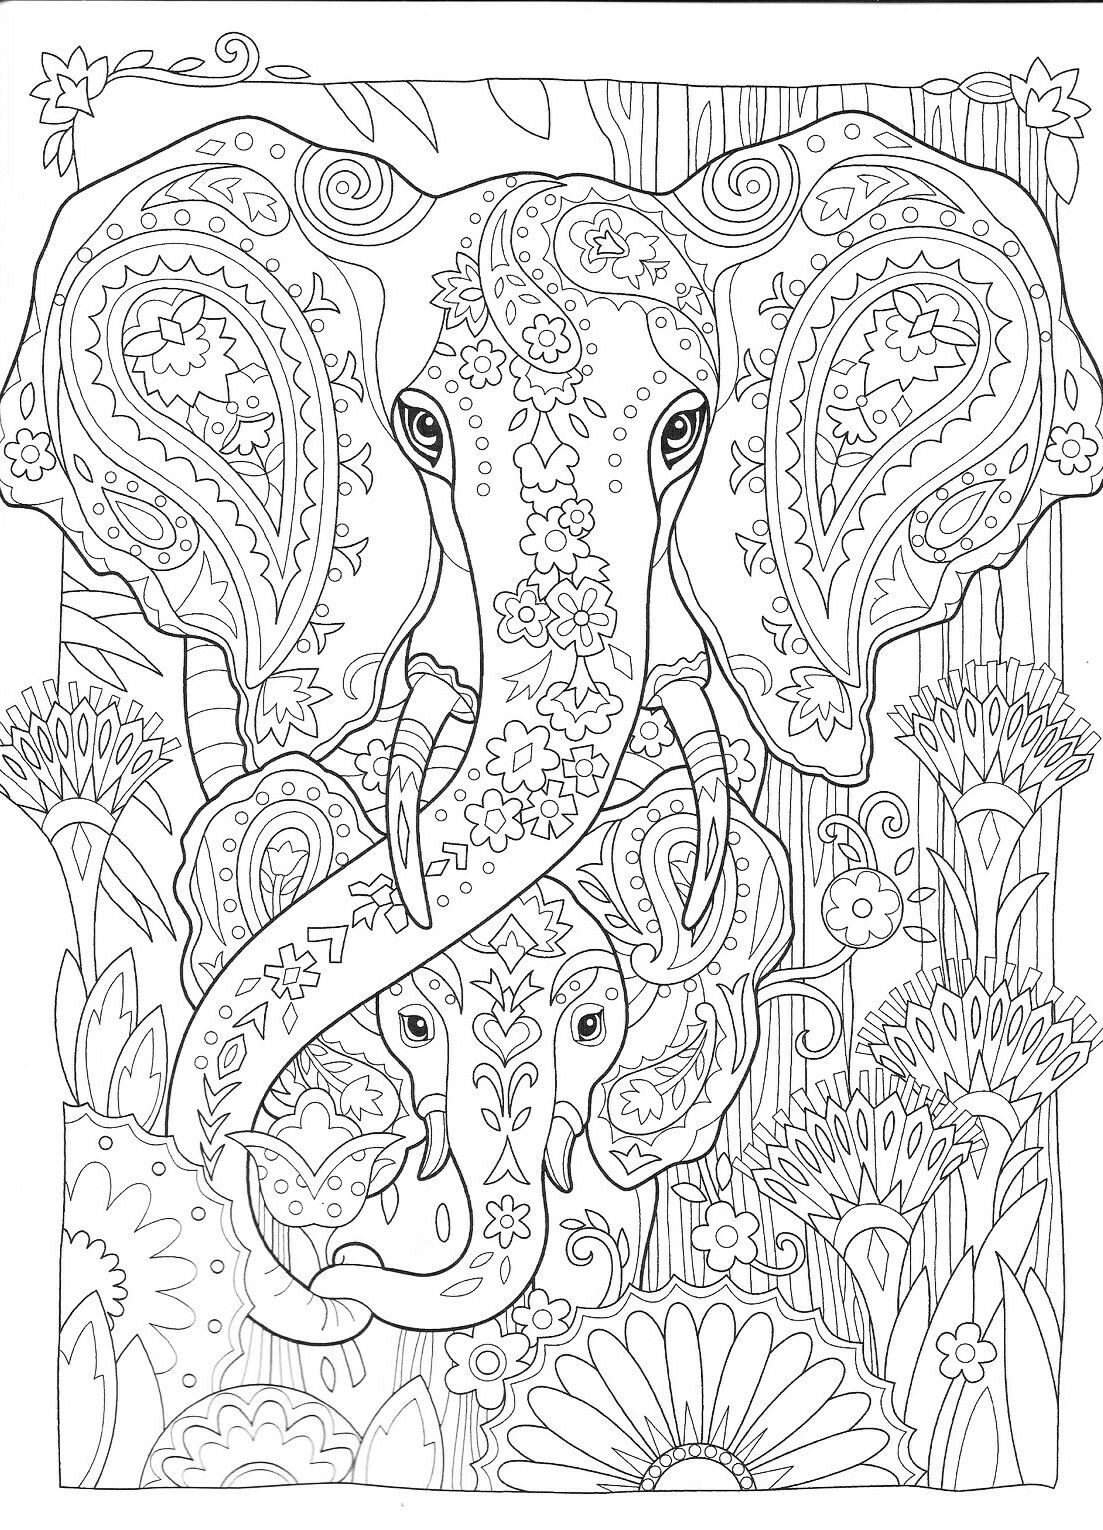 Elephants Only Elephant Coloring Page Animal Coloring Pages